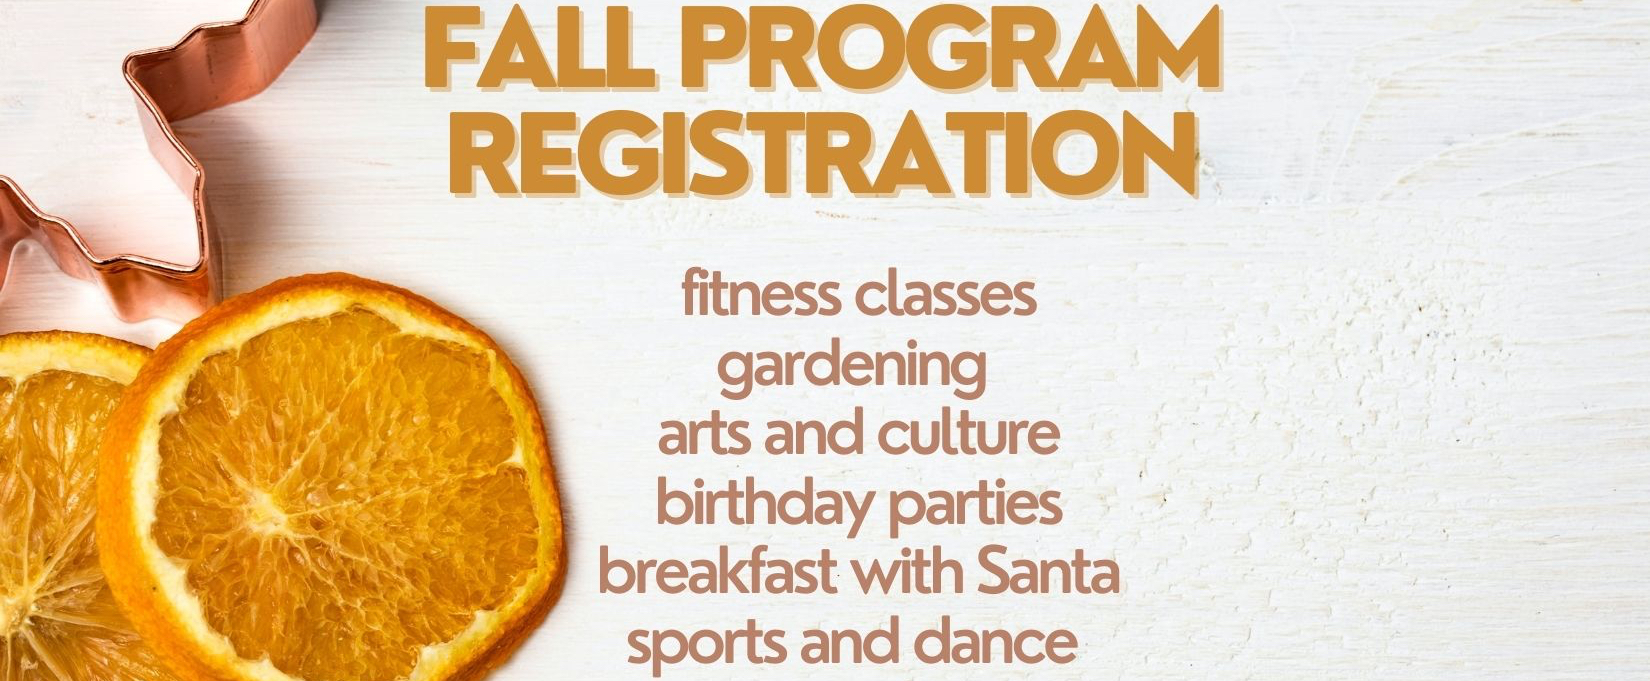 Fall Registration at West Point Grey Community Centre